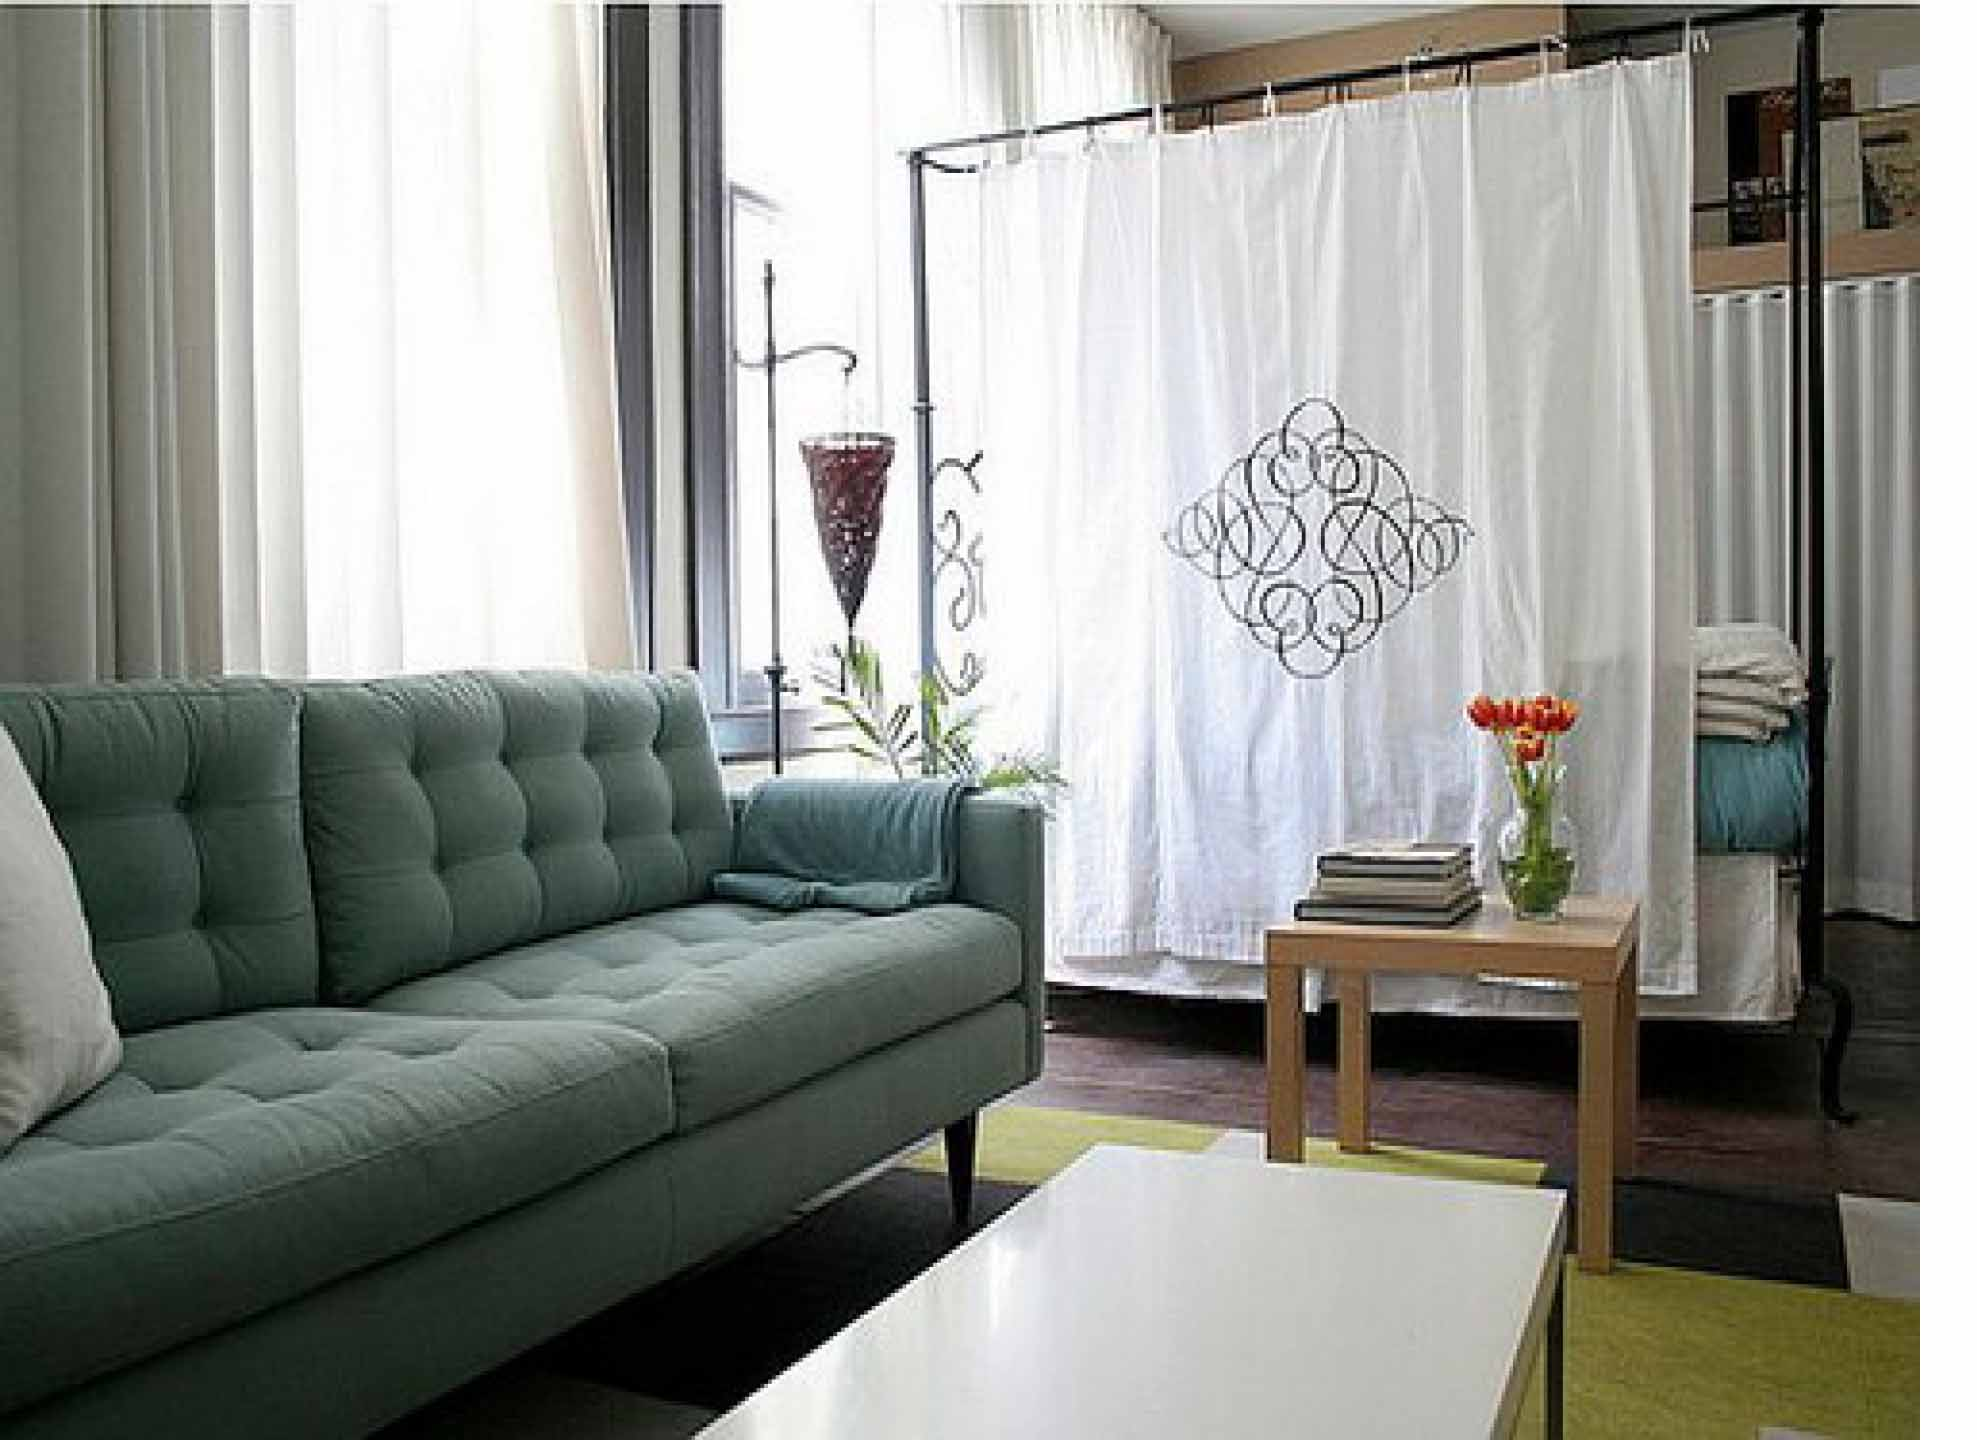 furniture-cozy-small-studio-apartment-interior-design-with-lovely-curtain-as-an-enclosed-room-divider-for-divide-bedroom-space-and-living-space-ideas-as-an-interesting-simple-and-cheap-wall